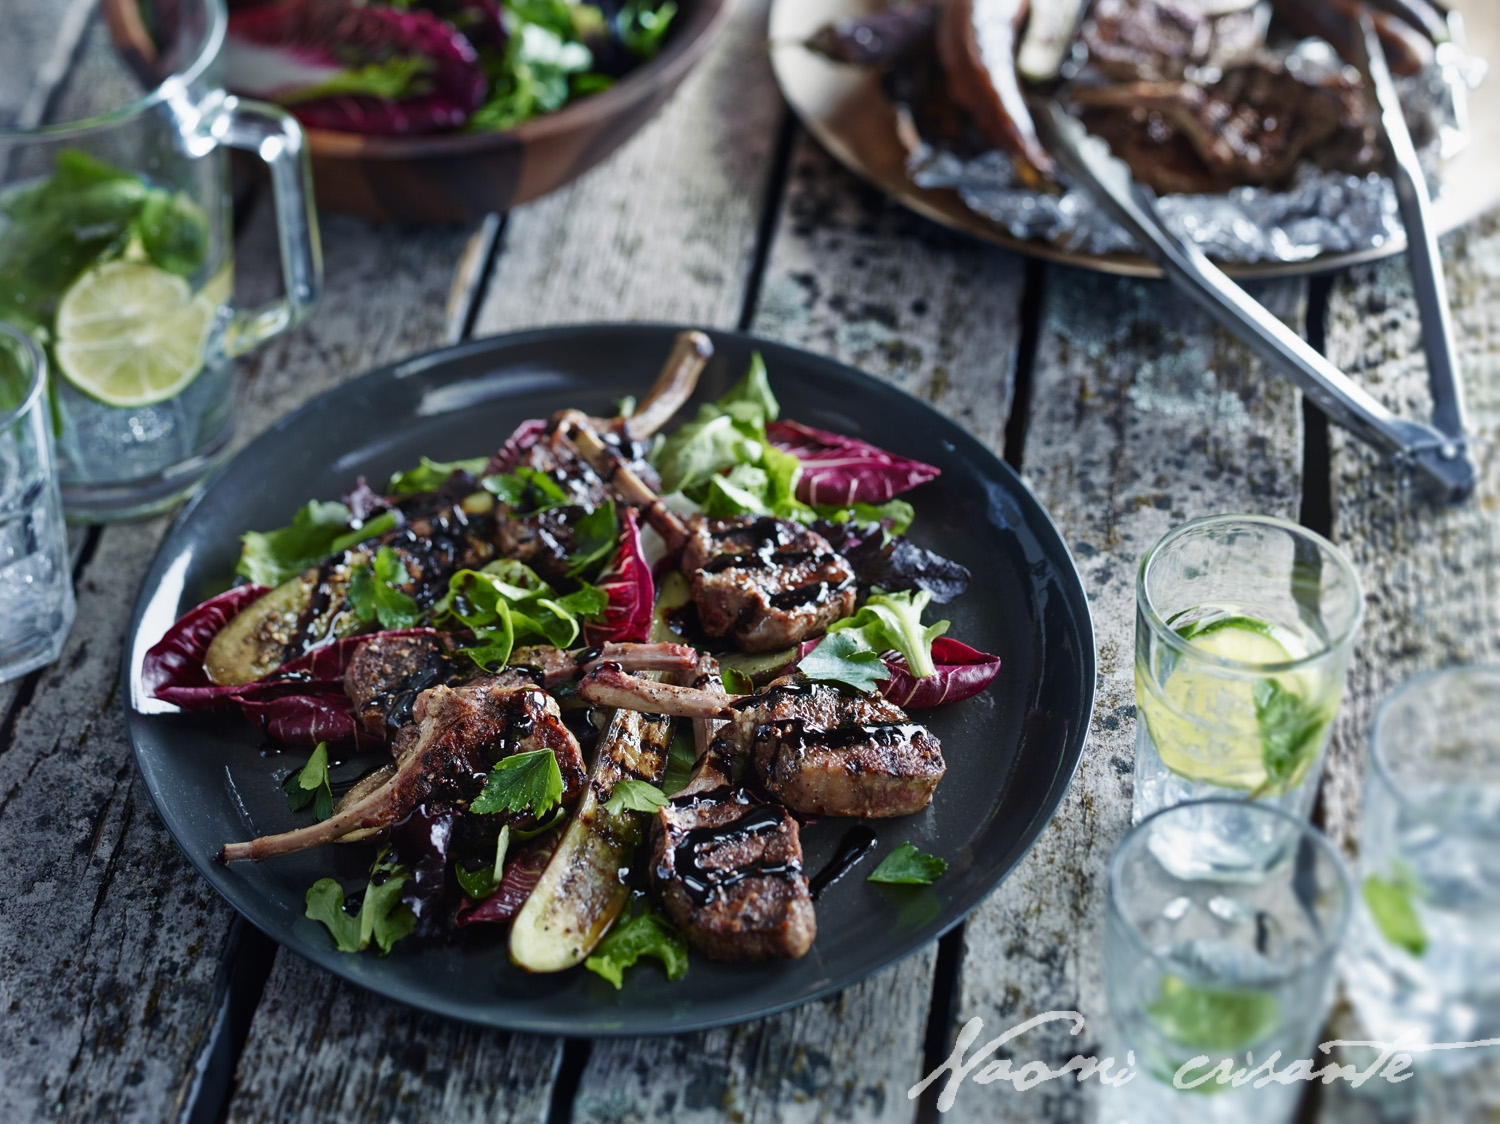 Peppery Balsamic Lamb Cutlets with Chargrilled Eggplant and Mixed Leaves